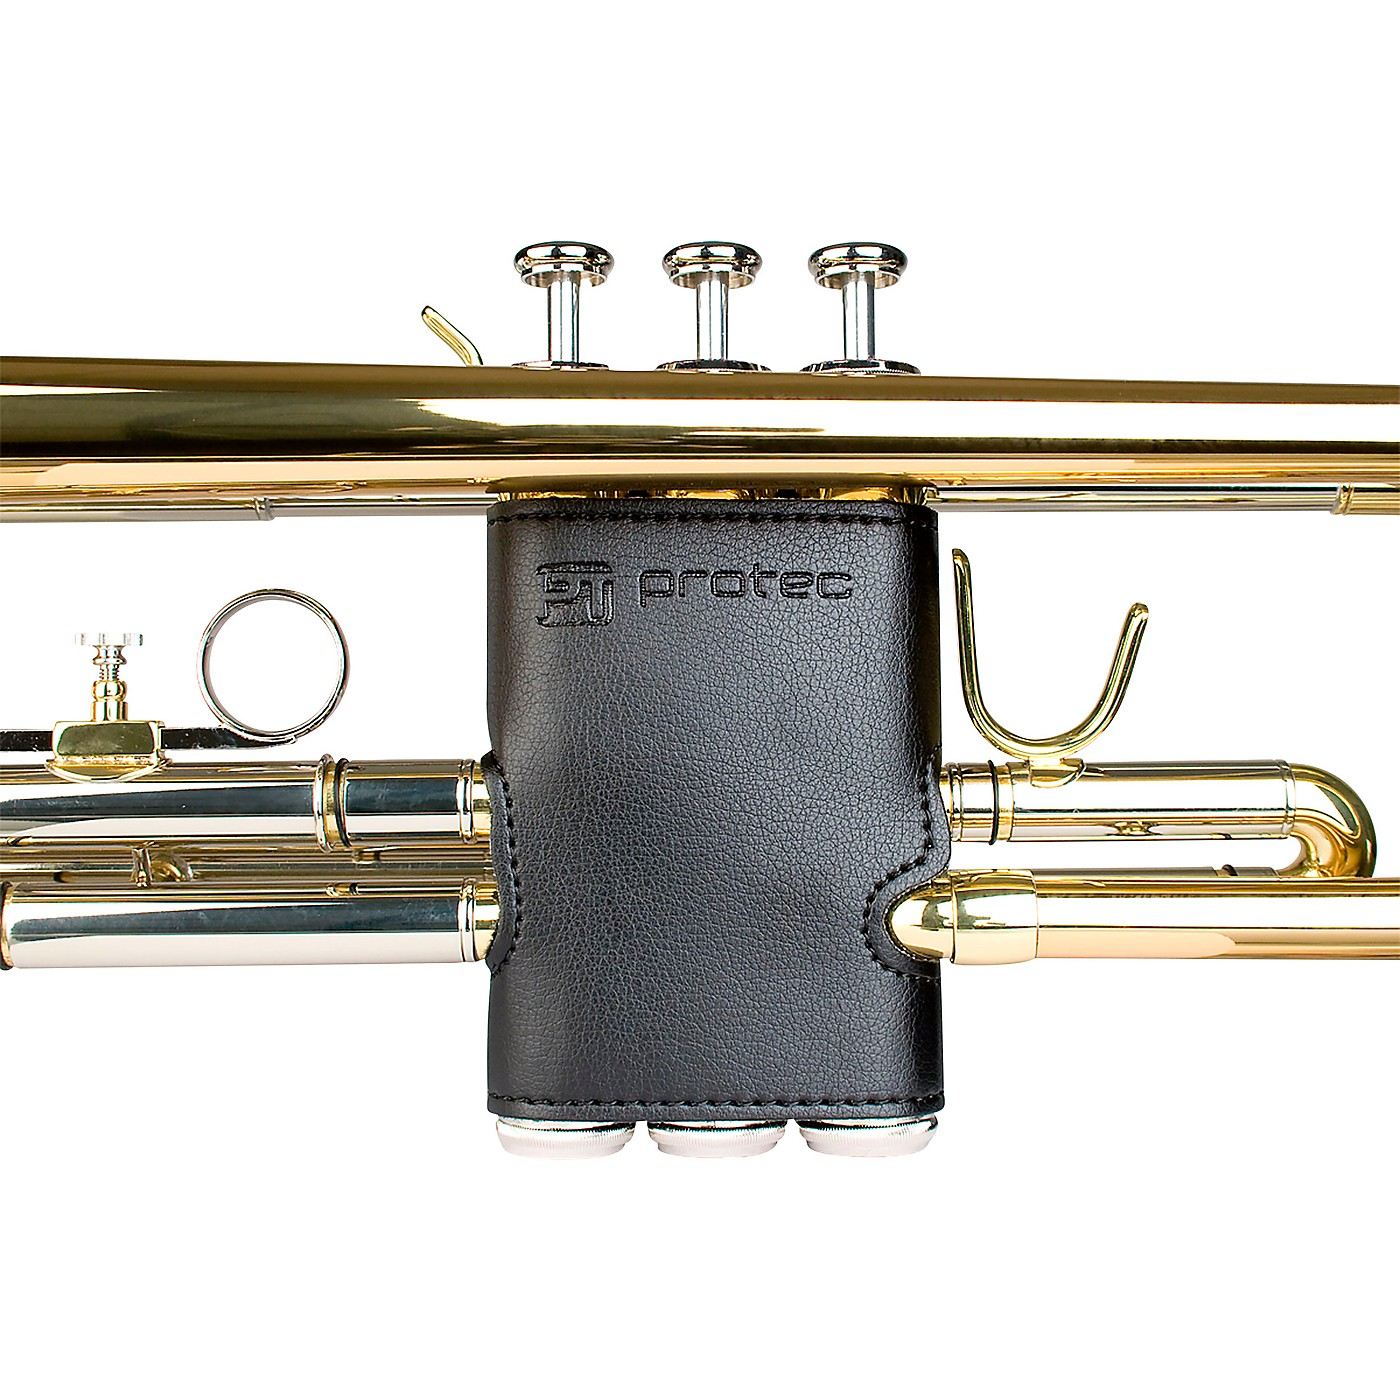 Protec Trumpet Leather Valve Guard thumbnail